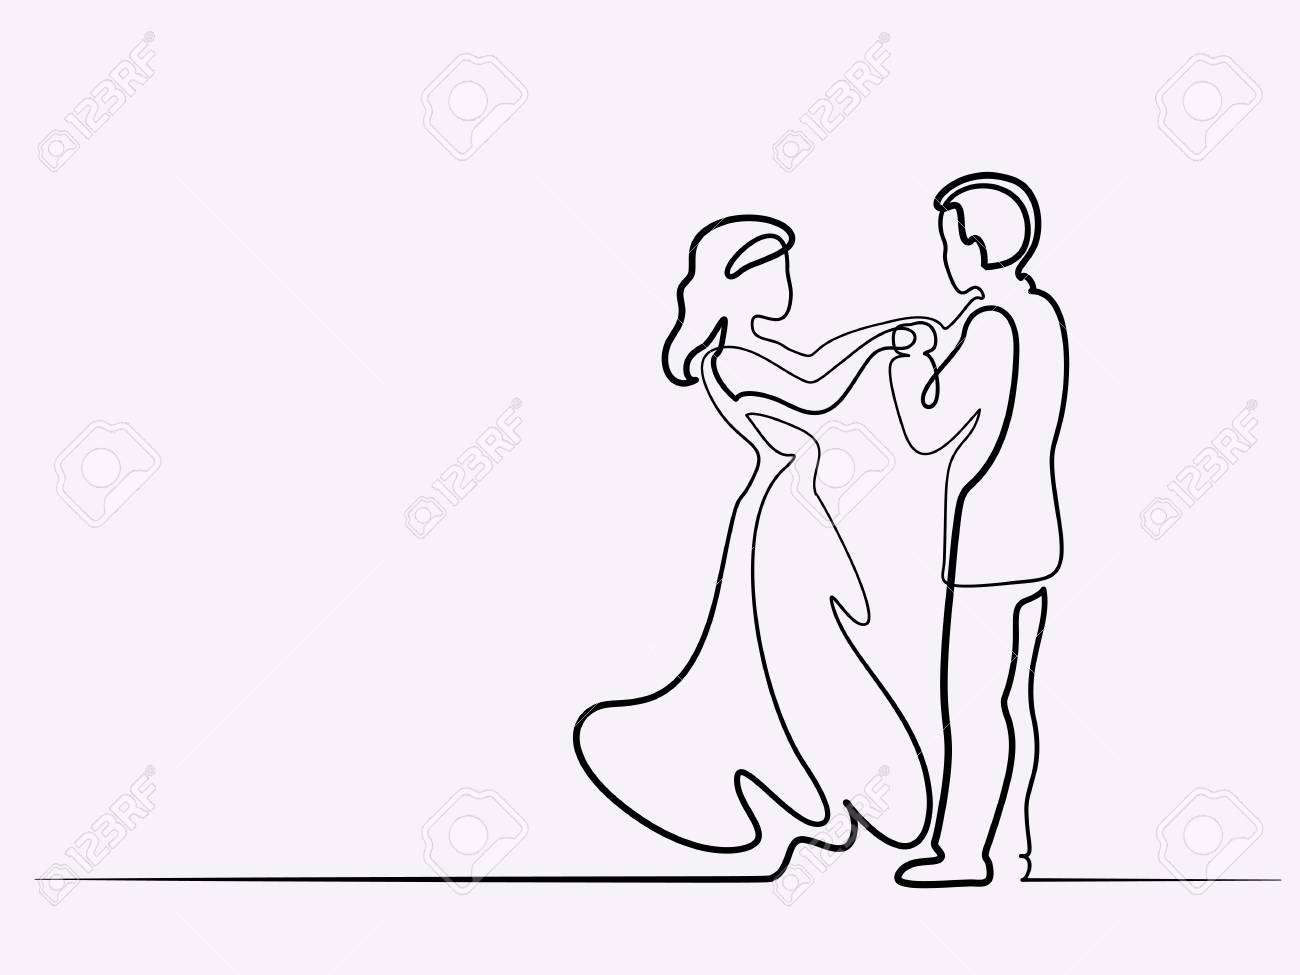 Continuous line drawing loving couple bride and groom on white background vector illustration